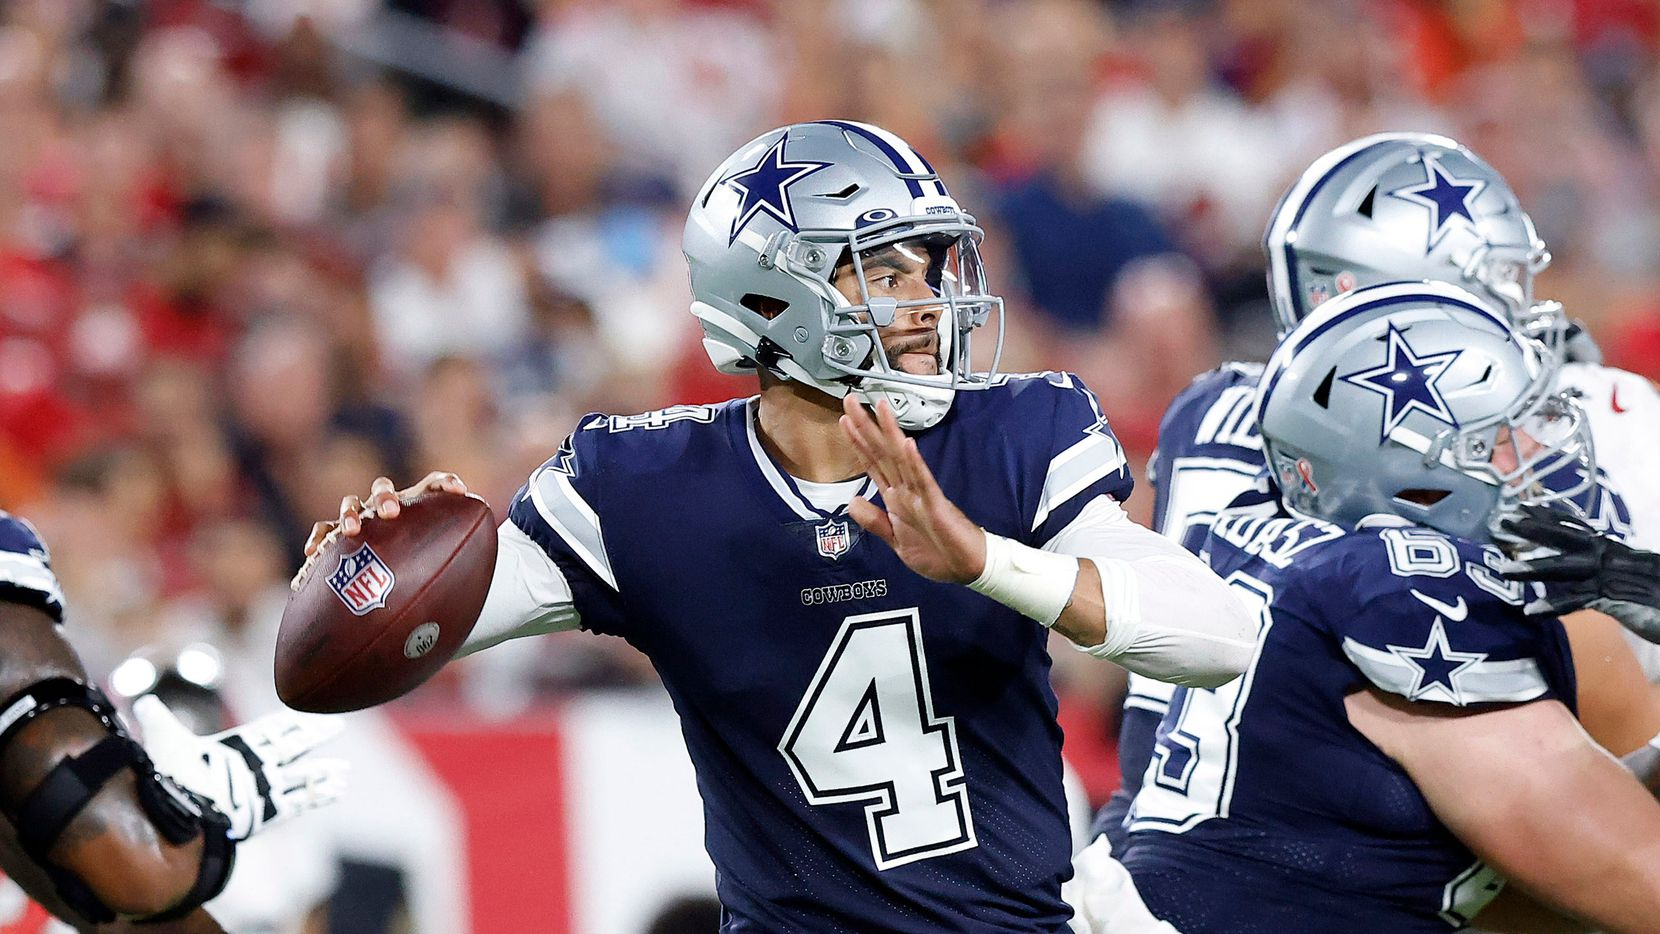 Dallas Cowboys quarterback Dak Prescott (4) throws from the pocket in the first quarter against the Tampa Bay Buccaneers at Raymond James Stadium in Tampa, Florida, Thursday, September 9, 2021. The Cowboys faced the Tampa Bay Buccaneers in the NFL season opener.